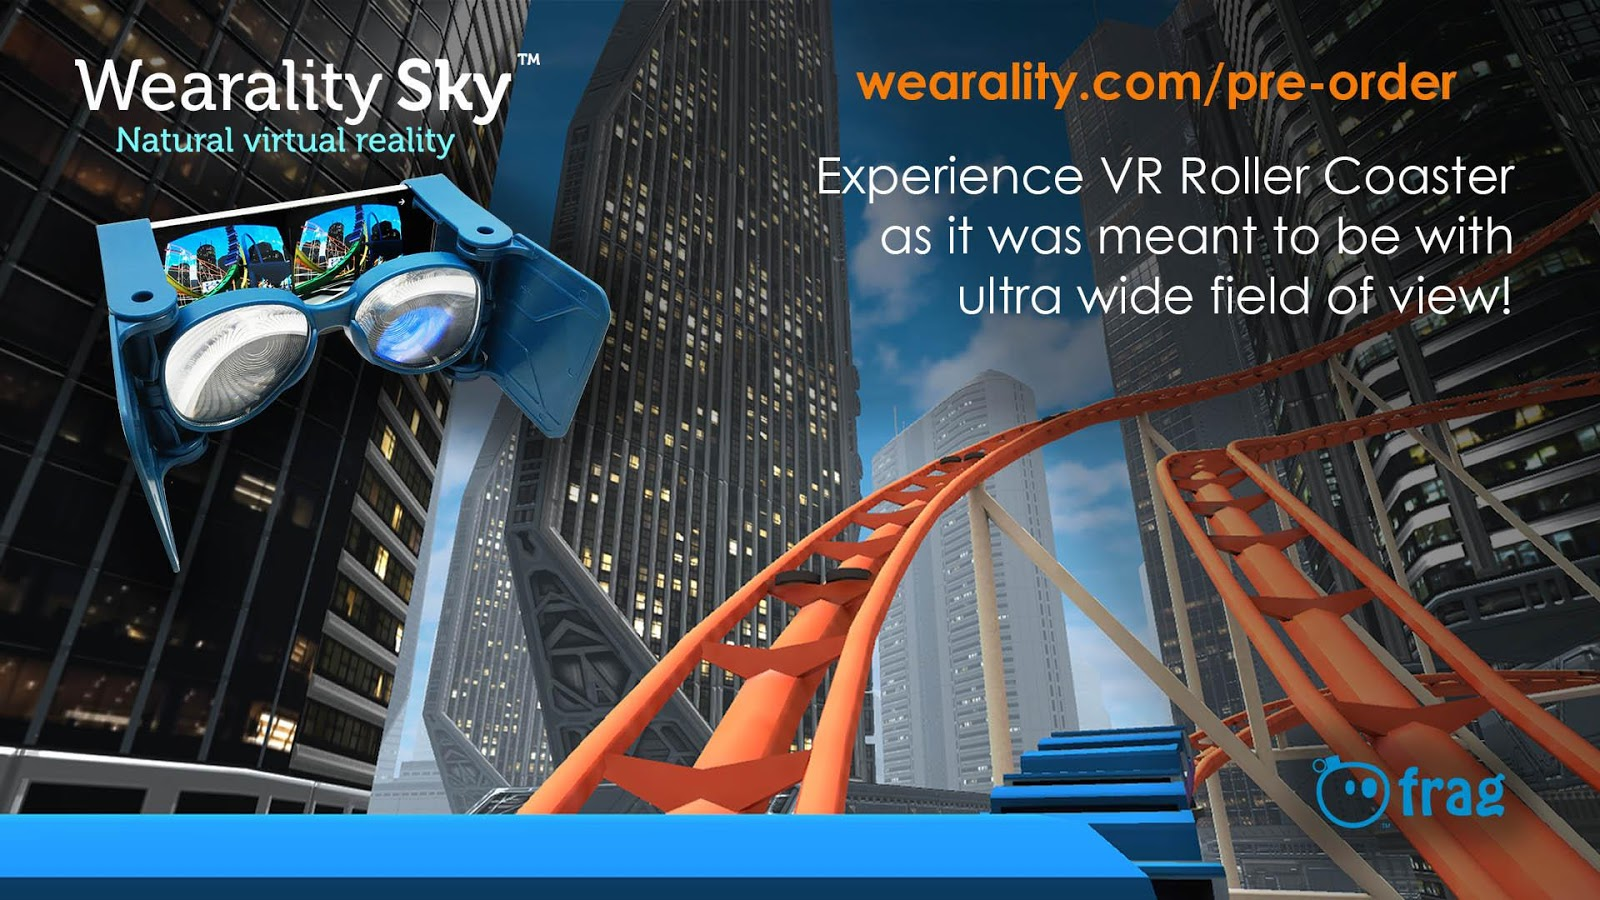 VR Roller Coaster 2 0 7 APK Download - Android Adventure Games